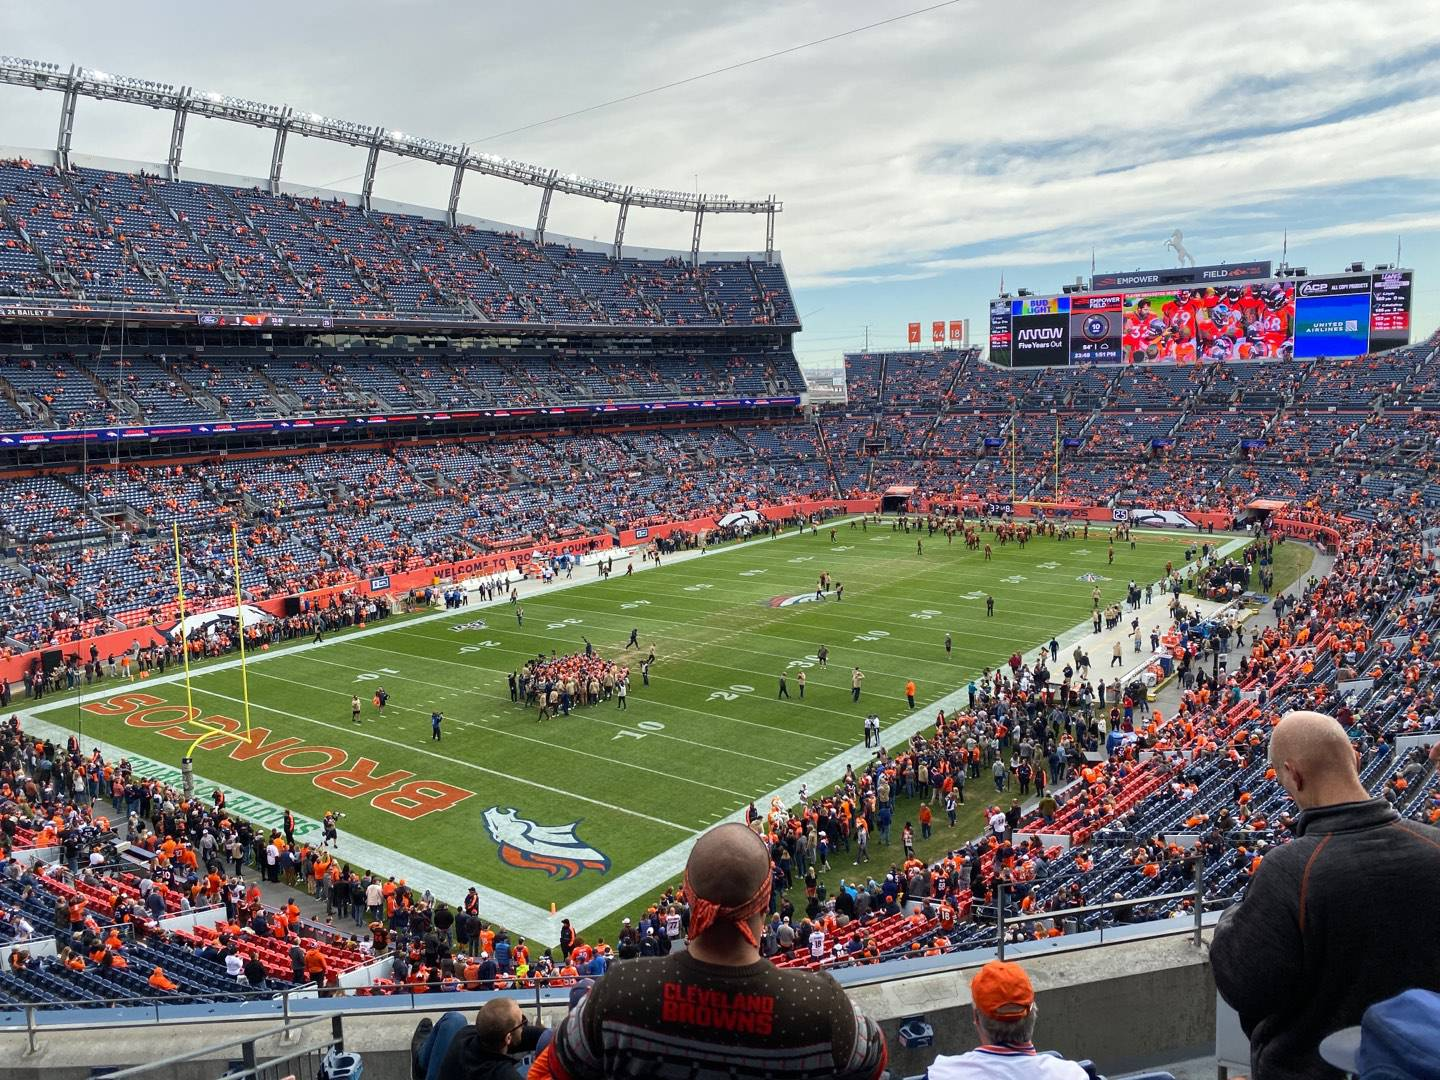 Empower Field at Mile High Stadium Section 318 Row 5 Seat 3